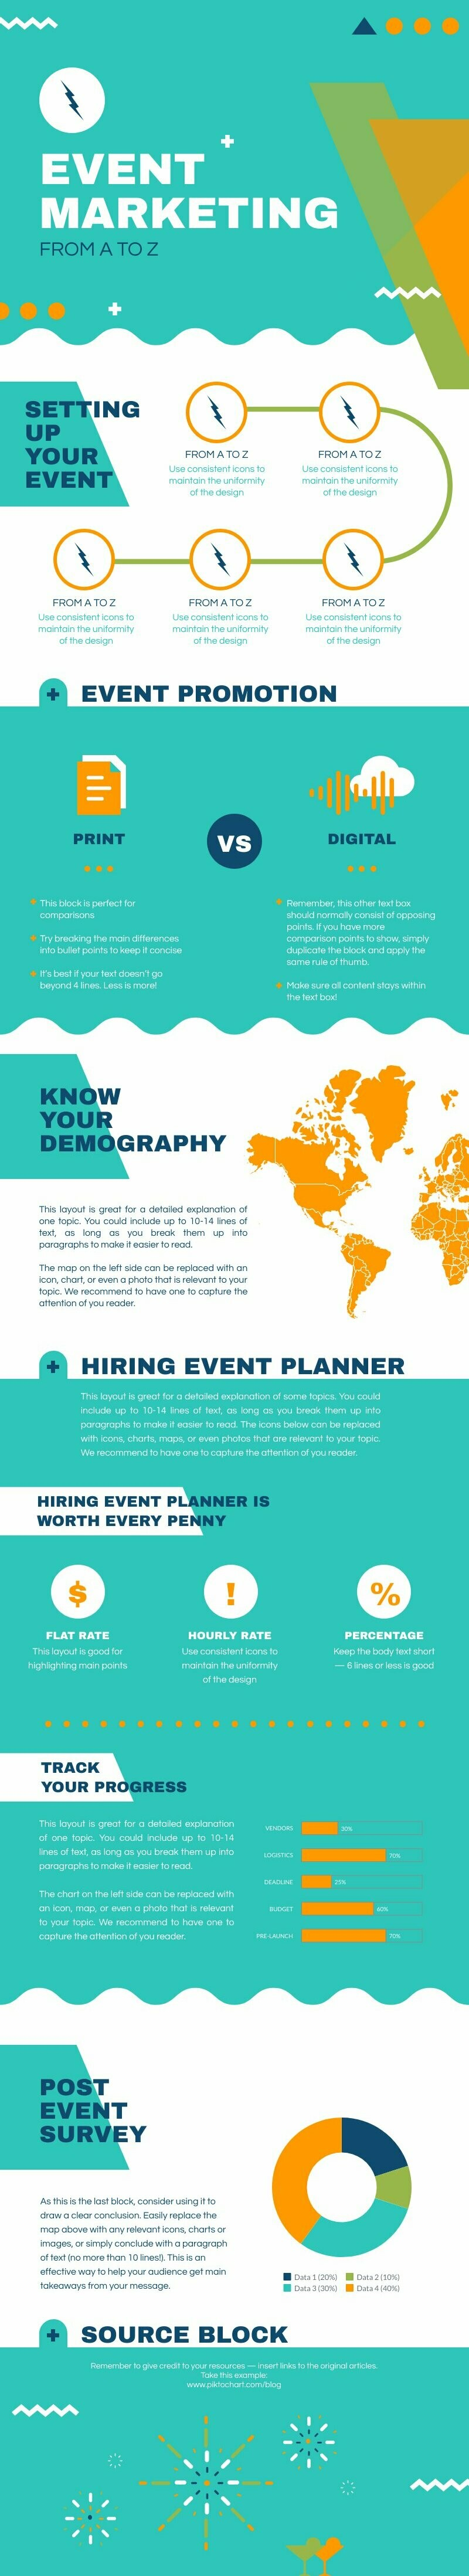 Event Marketing